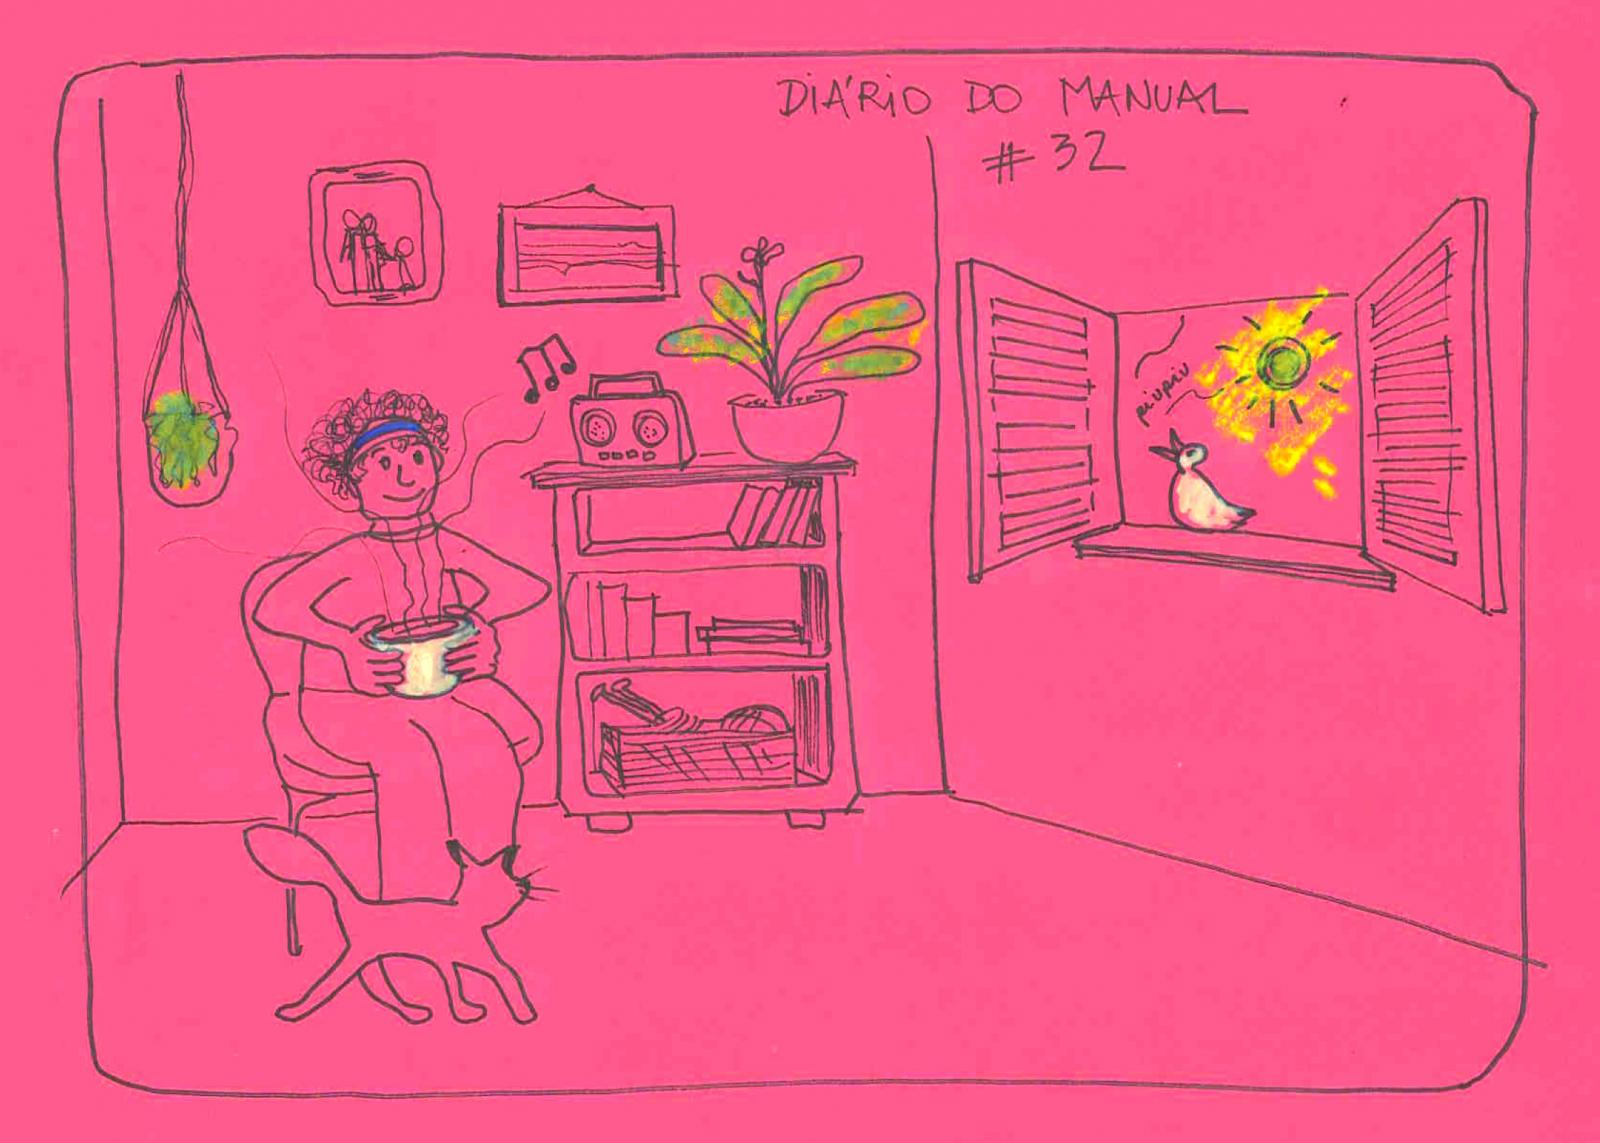 Diário do Manual #33